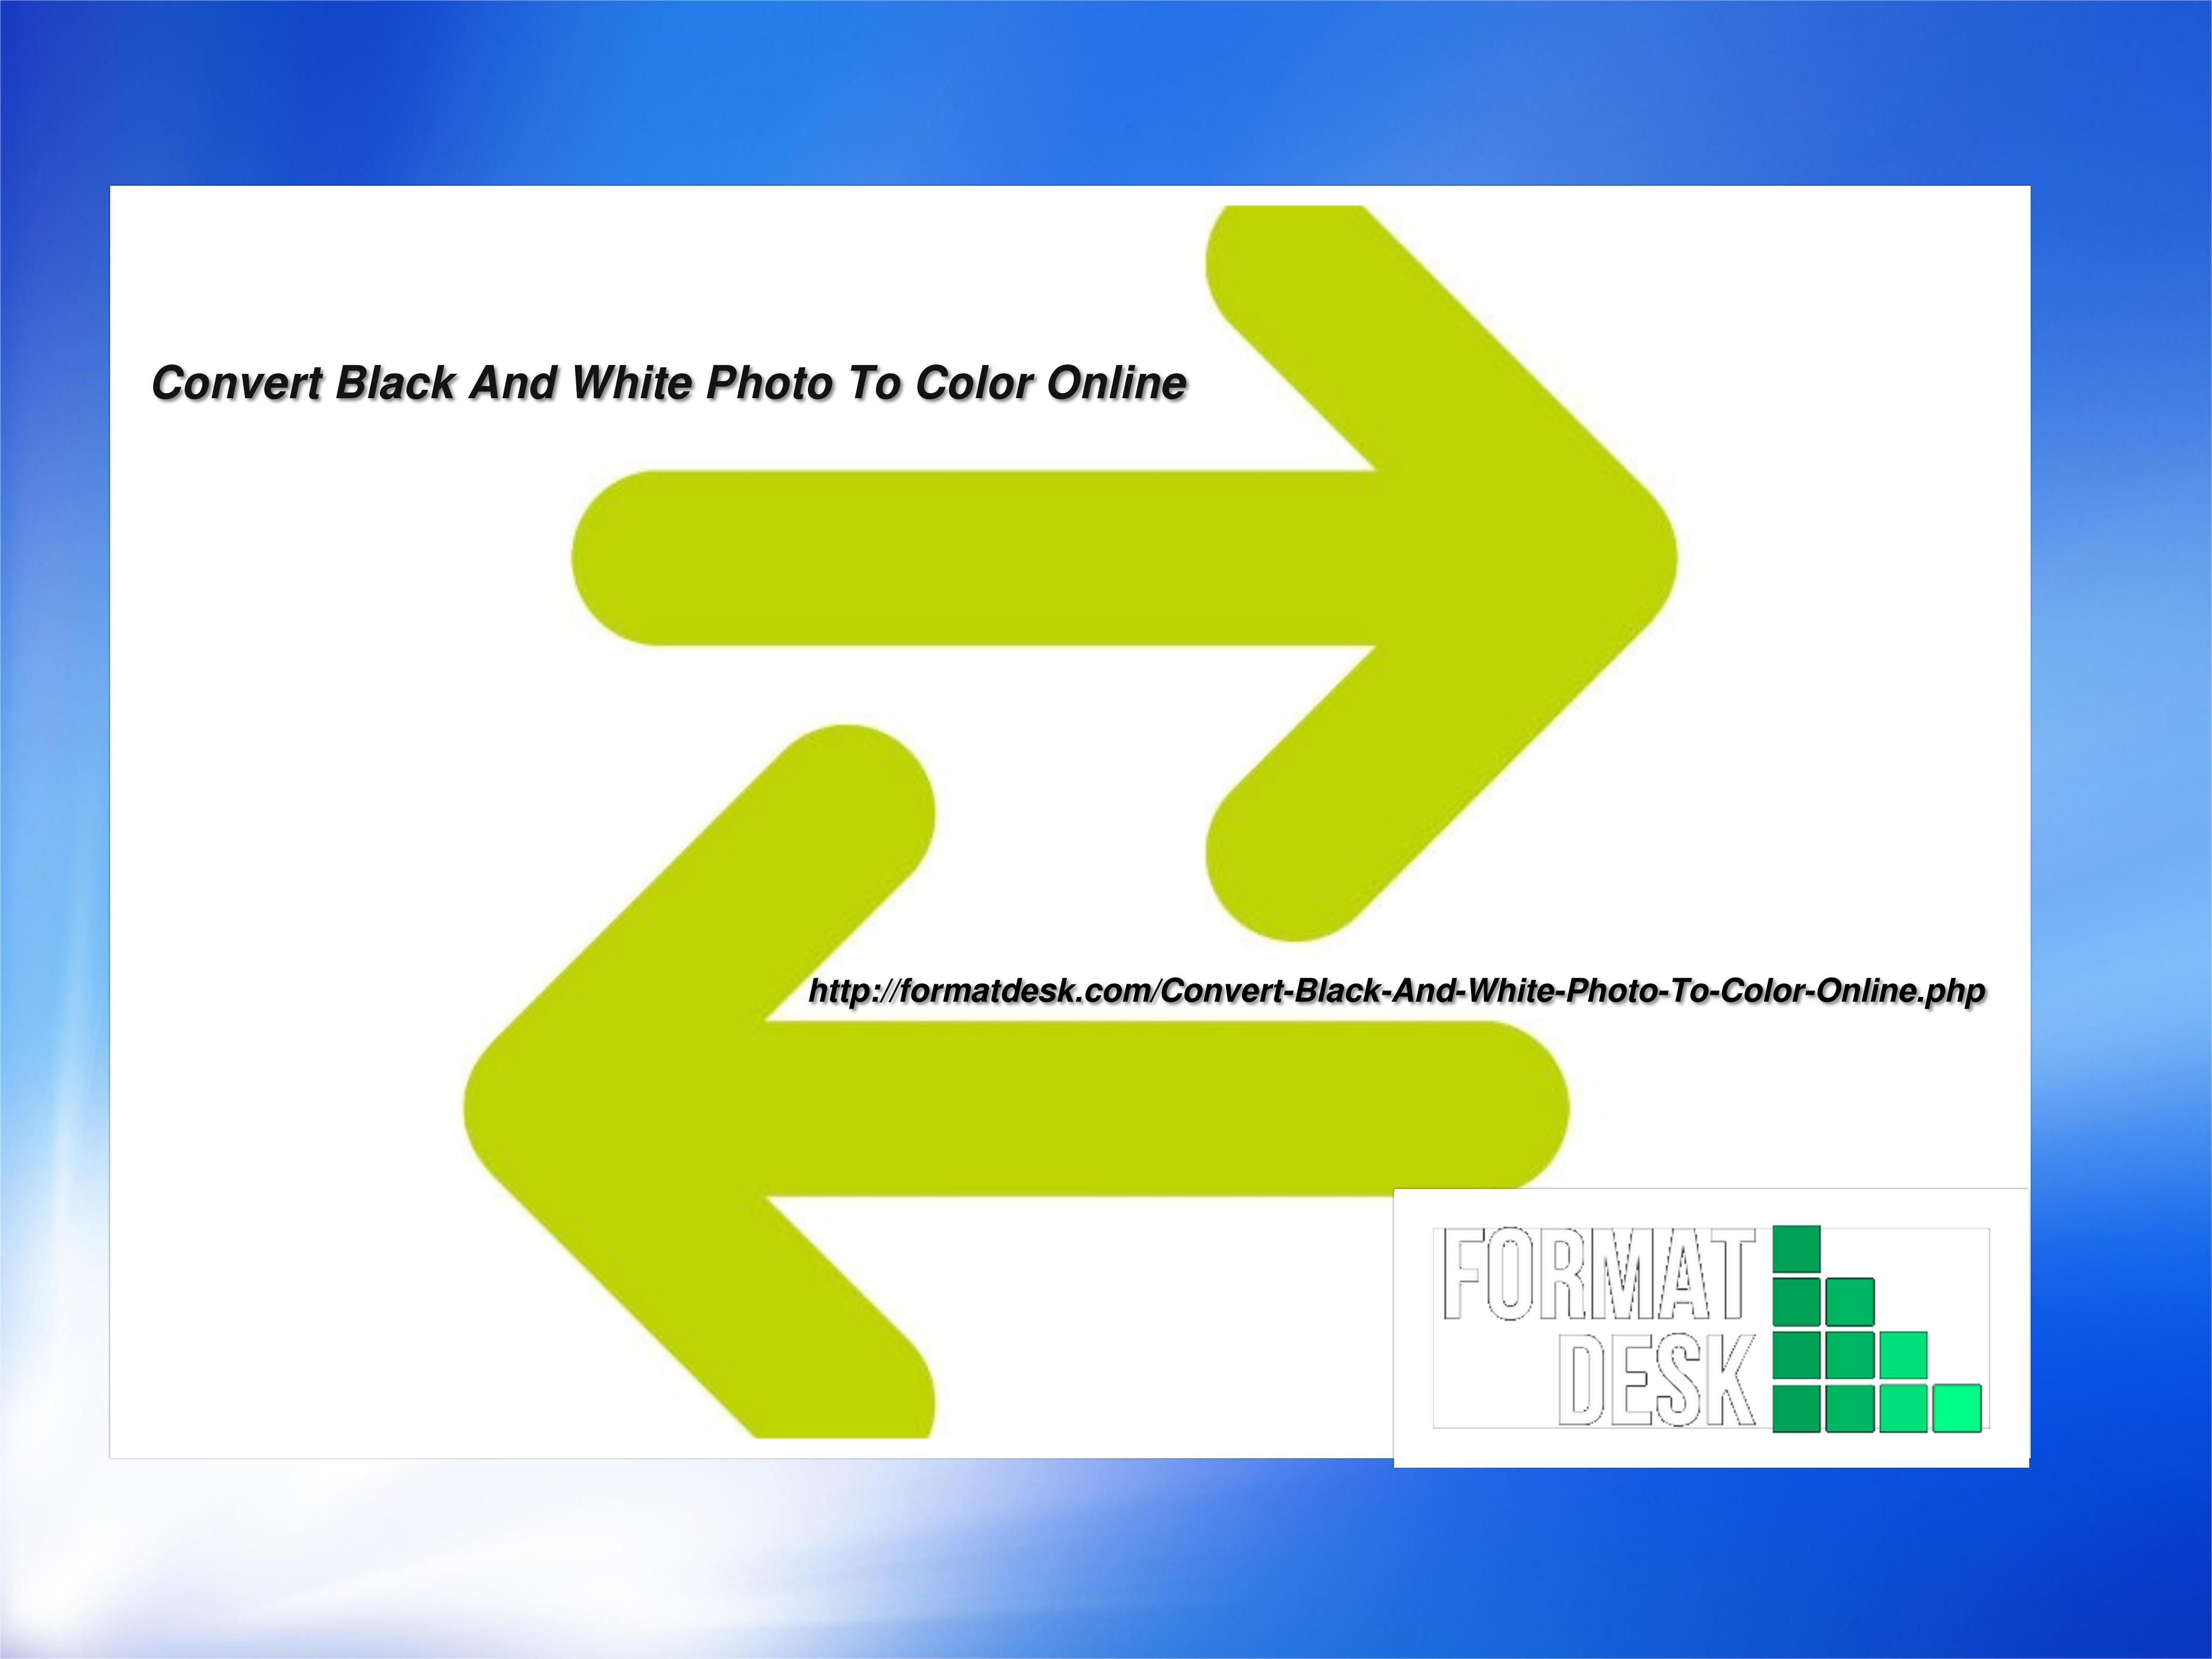 best website for Convert Black And White Photo To Color